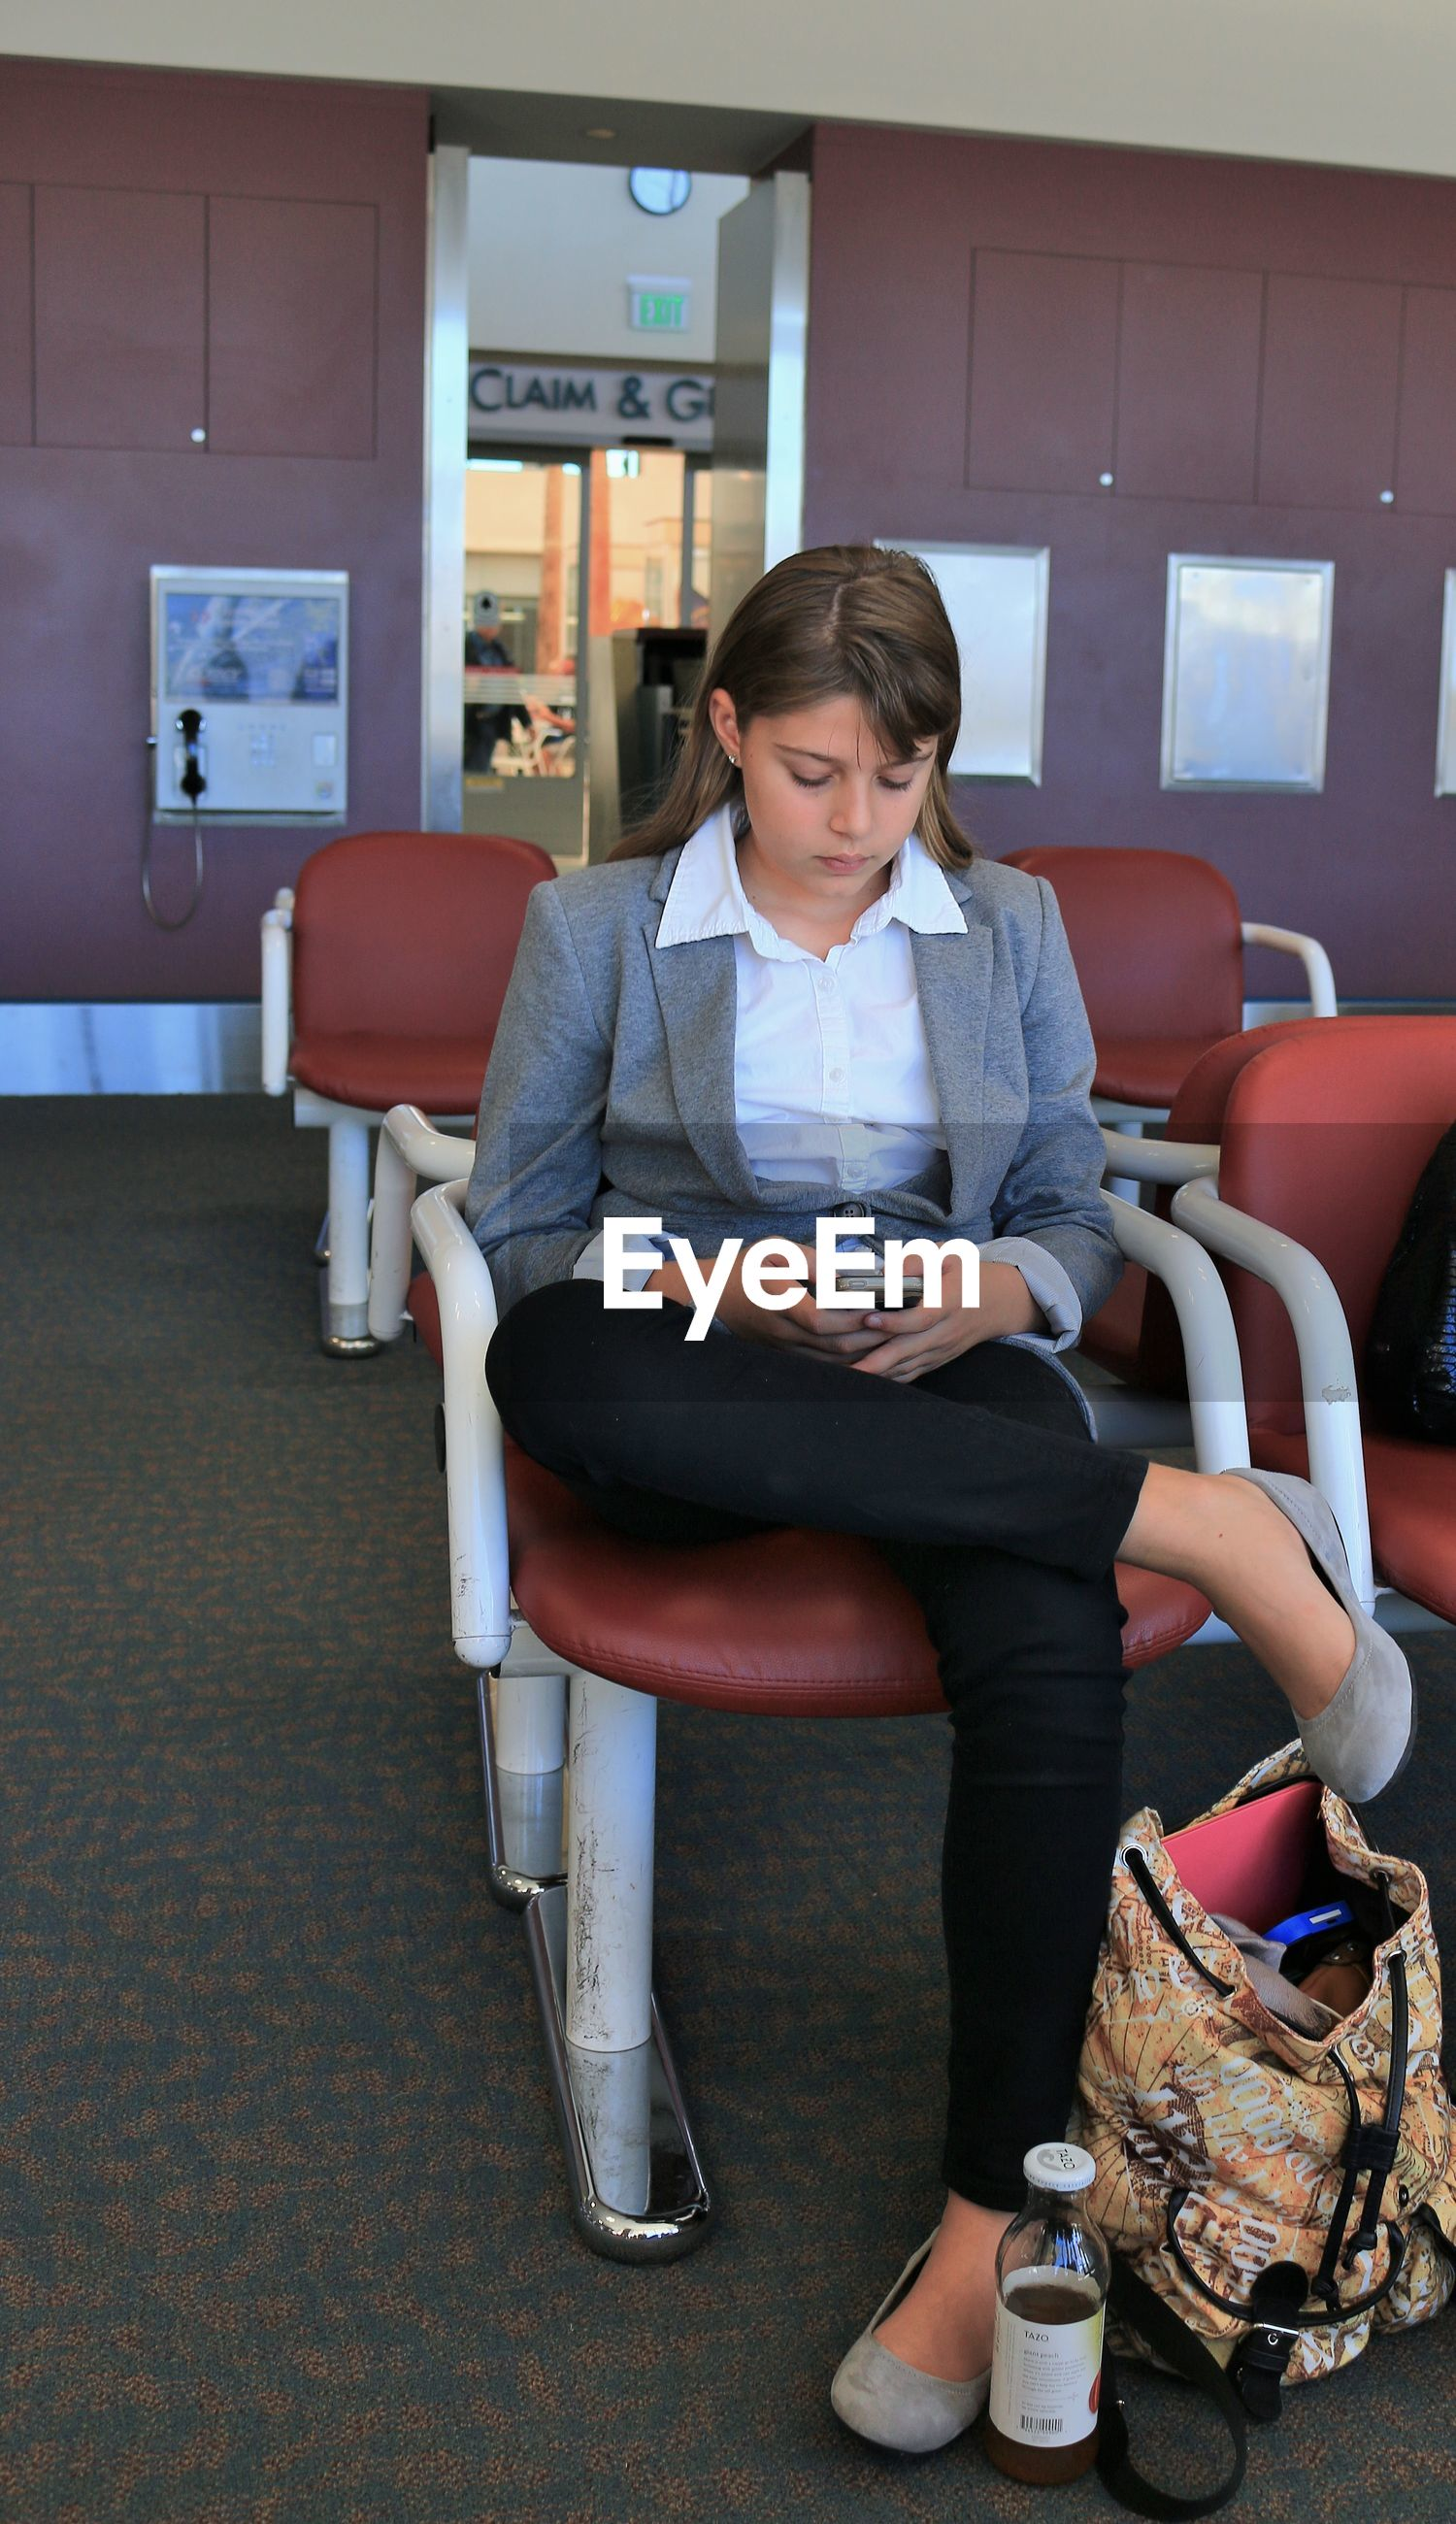 Woman using smart phone while sitting on chair at airport